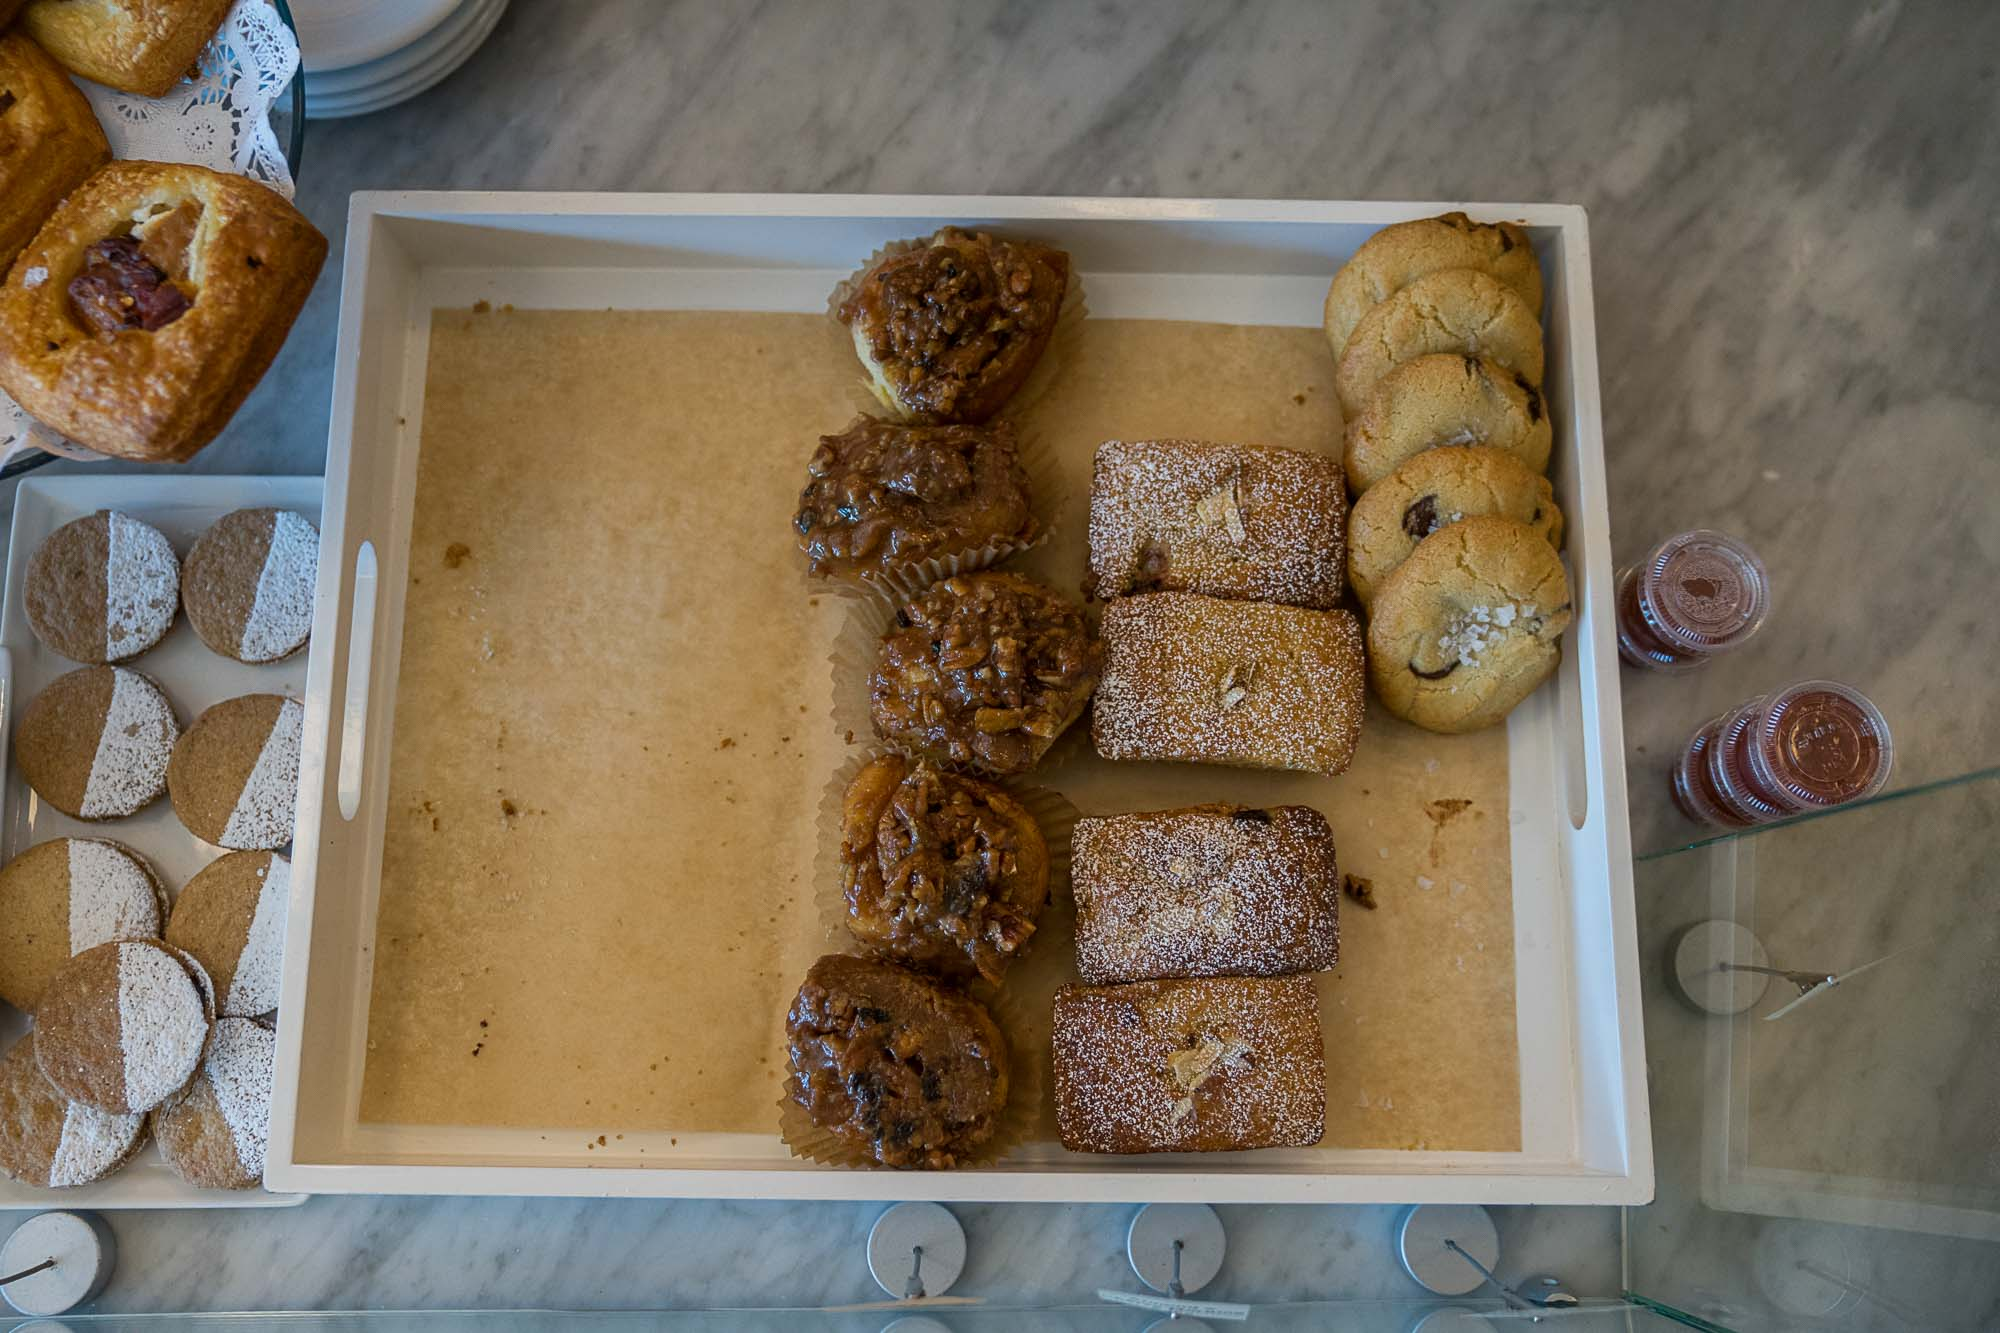 A plate of cookies and doughnuts at Boxcar Coffee Roasters in Boulder, Colorado.